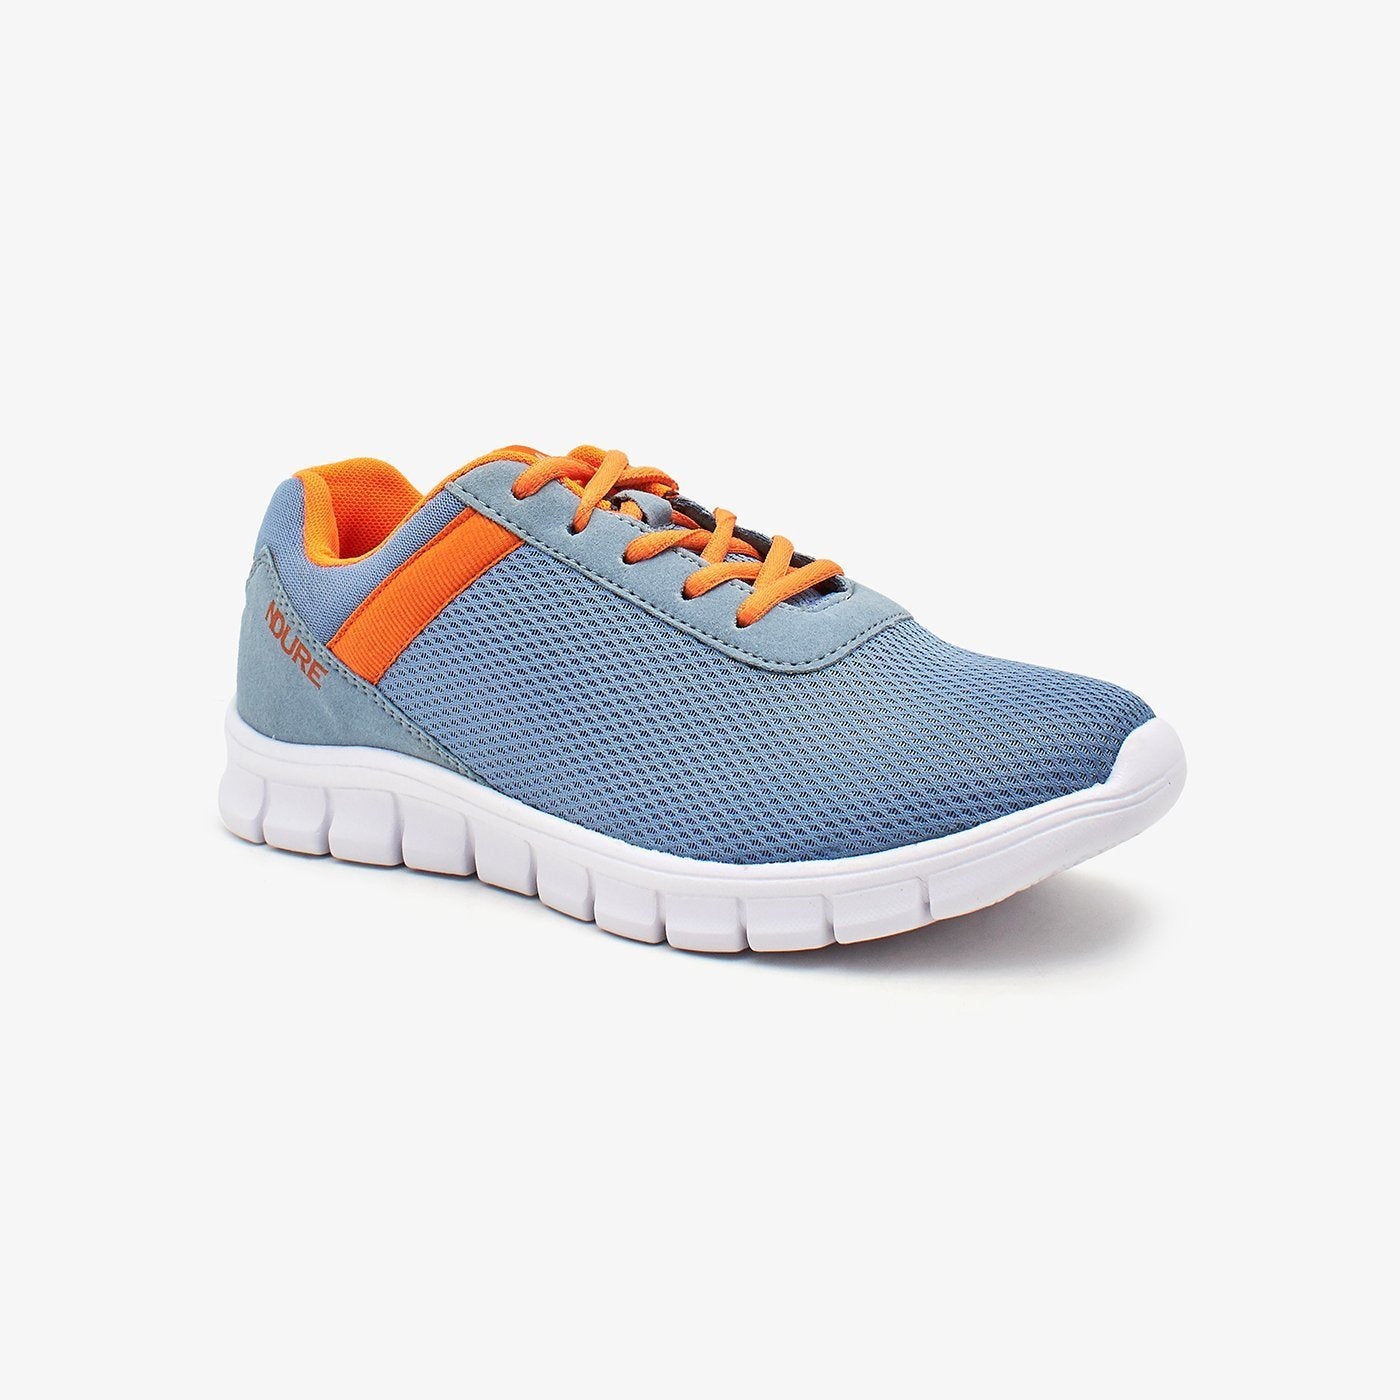 Comfy Shoes for Women